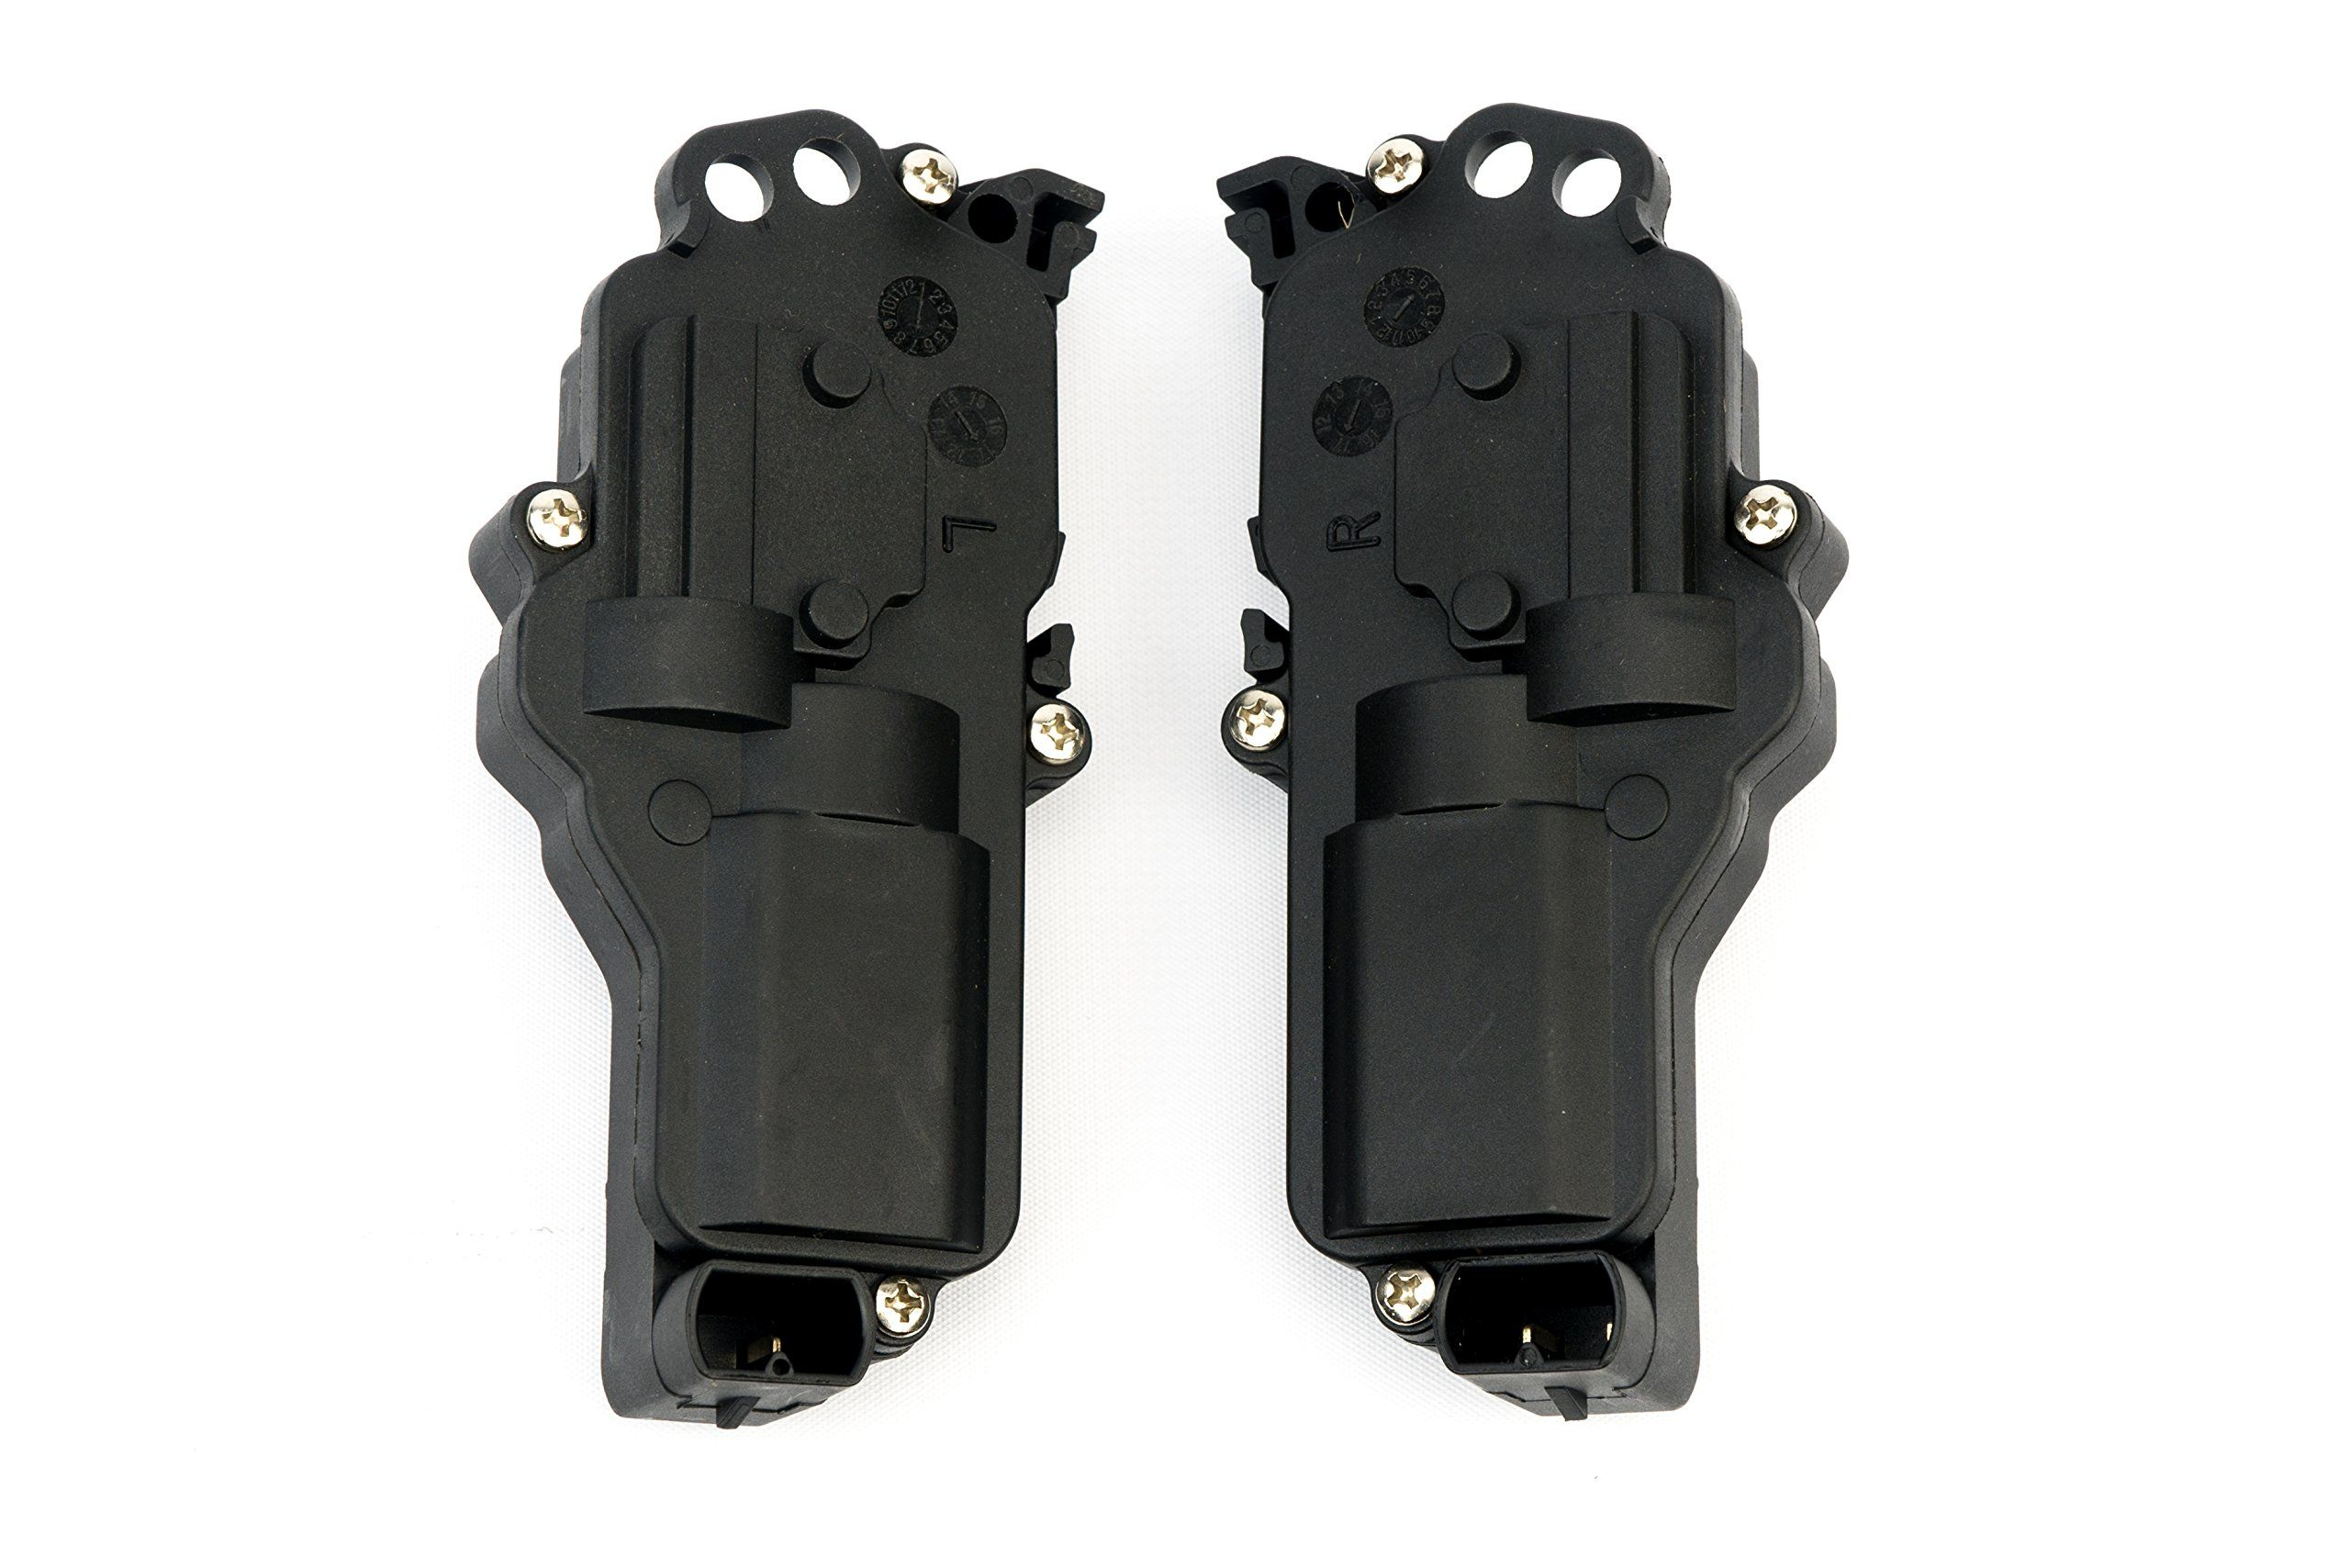 Power Door Lock Actuator Right And Left Side Fits Ford F150 F250 F350 F450 Excursion Expedition Mustang Replaces 6l3z2 Ford F150 F250 Ford Excursion